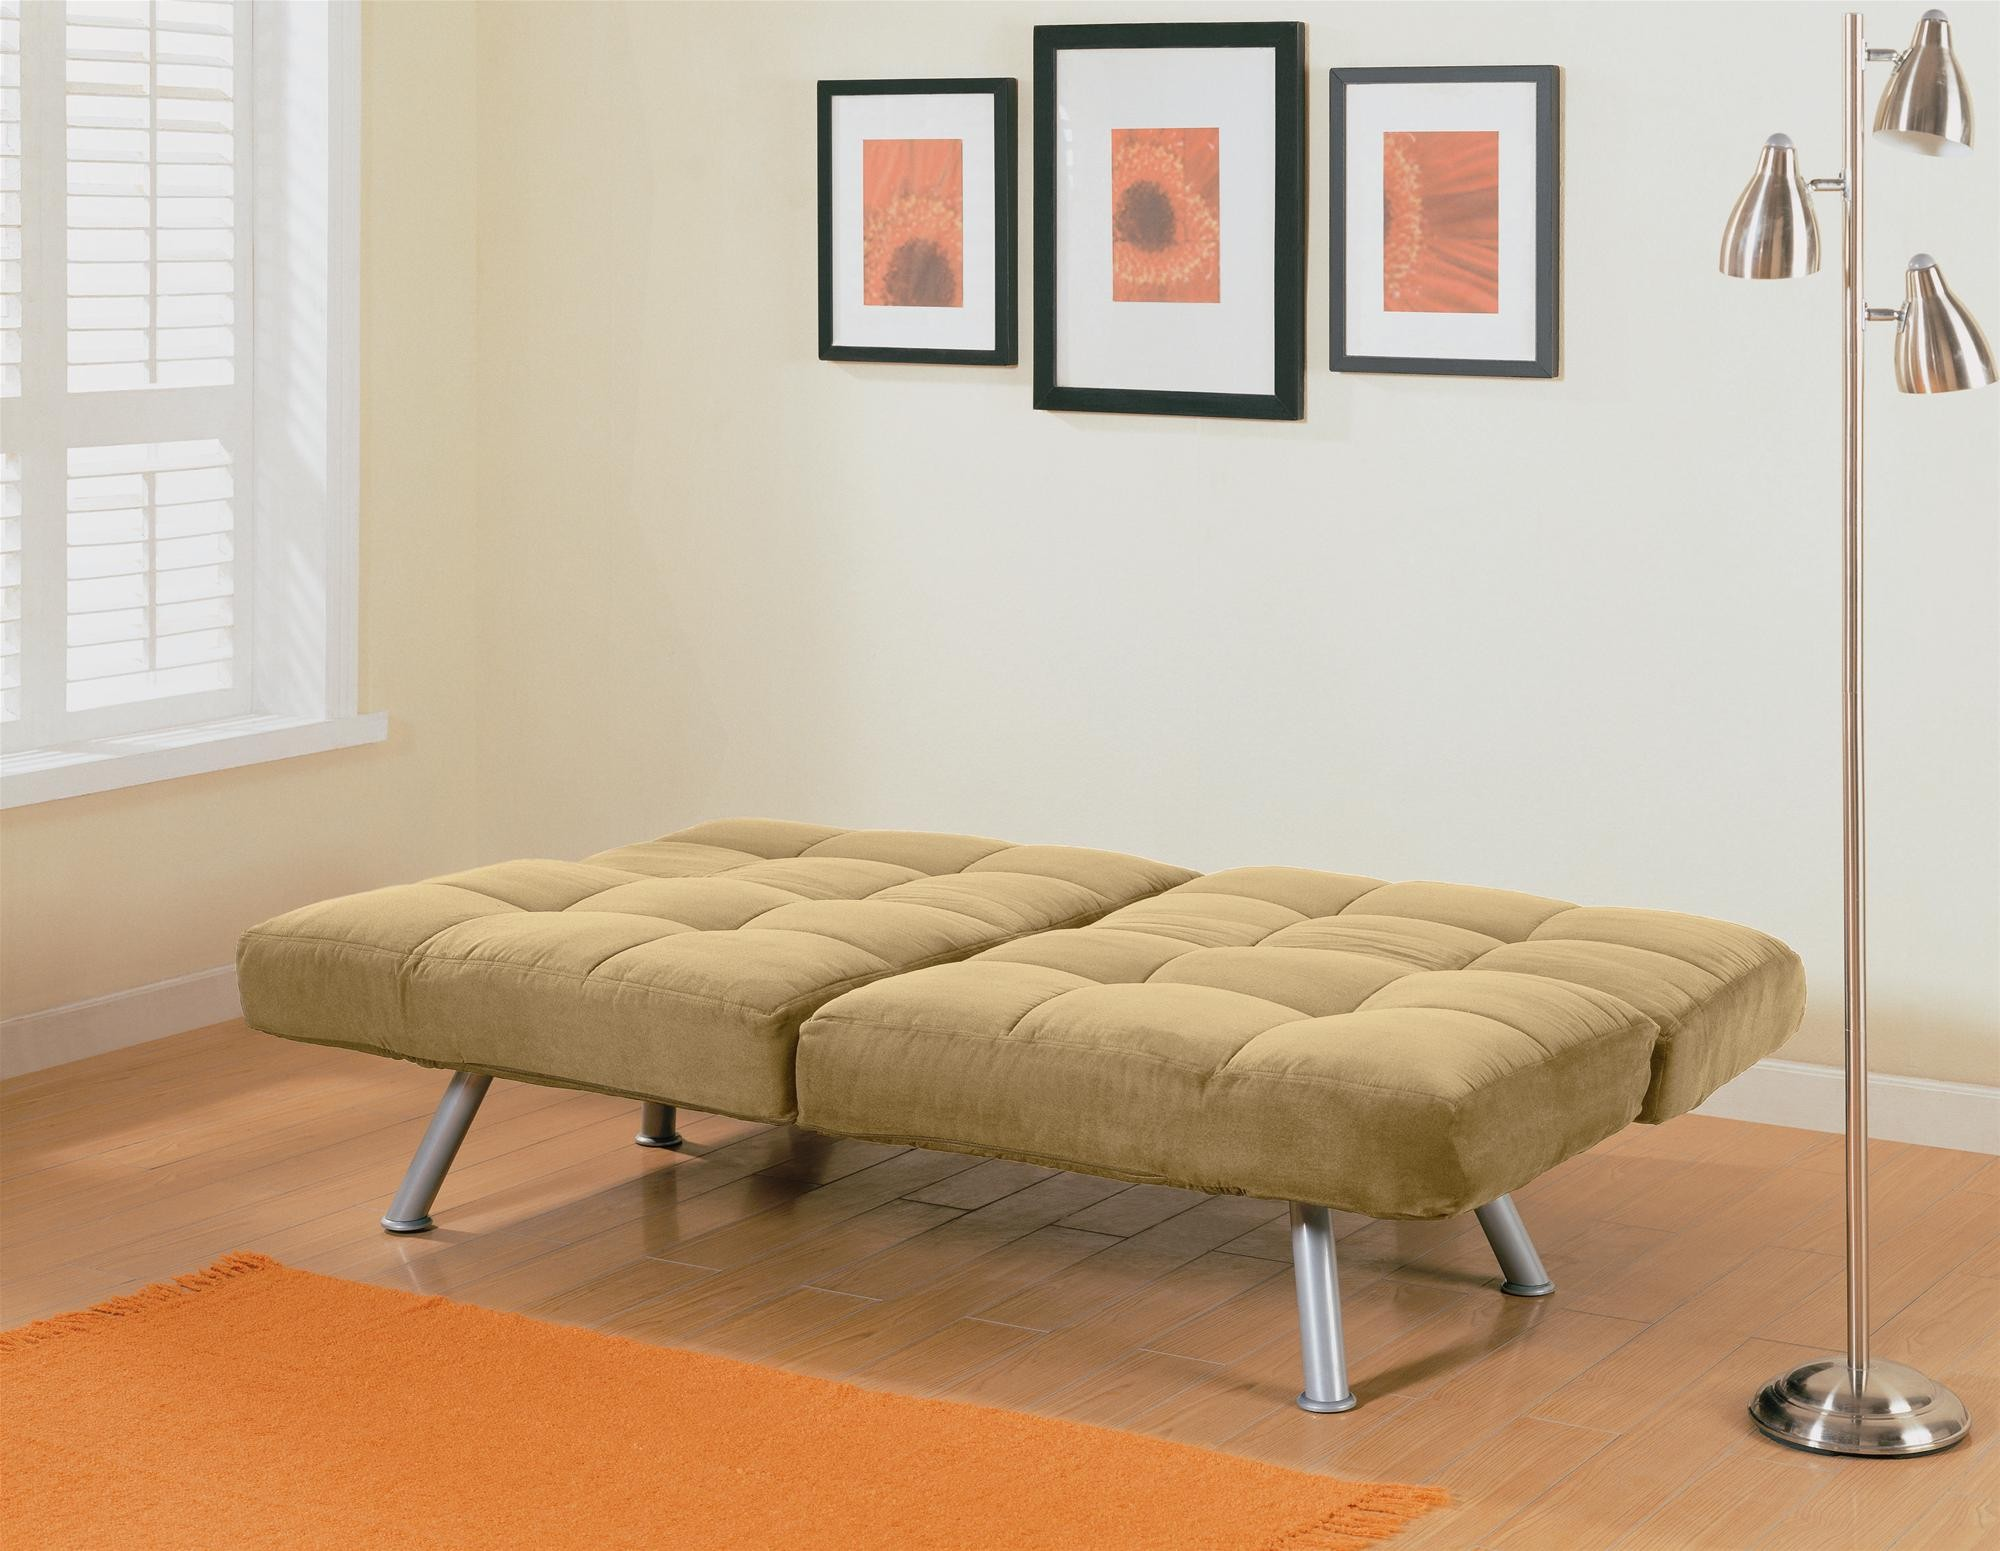 Sofa Beds for Small Spaces also Sleeper Sofas for Small Apartement ...